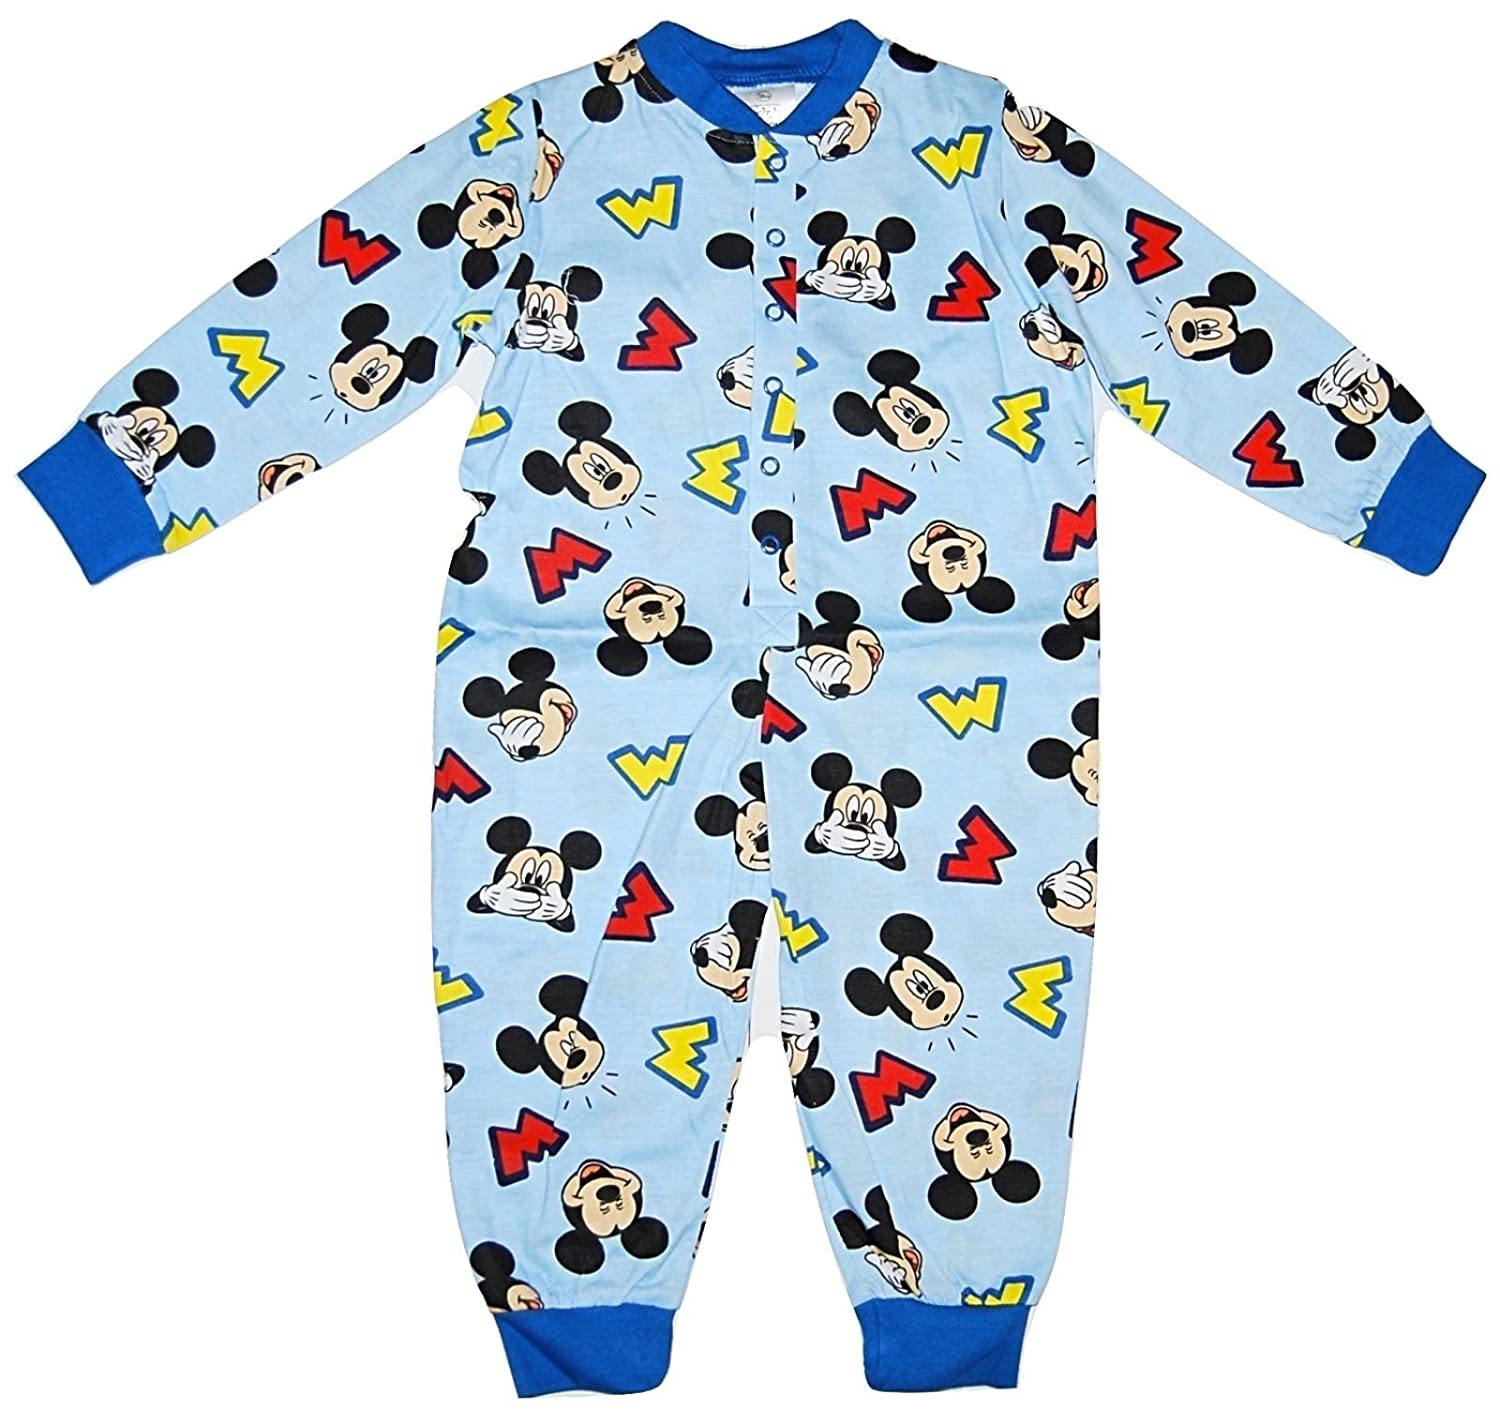 Boys Pyjamas All Inn One Jumpsuit Disney Mickey Mouse Blue 1-5 Years